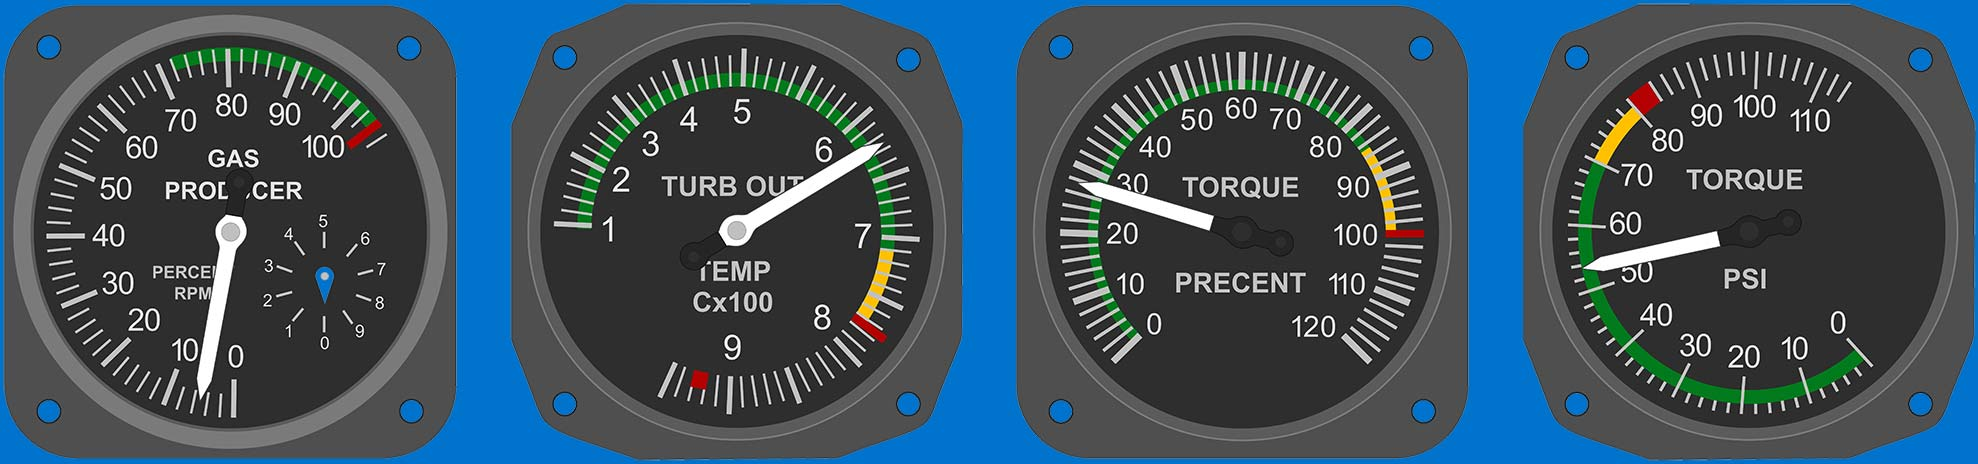 Helicopter Gauges